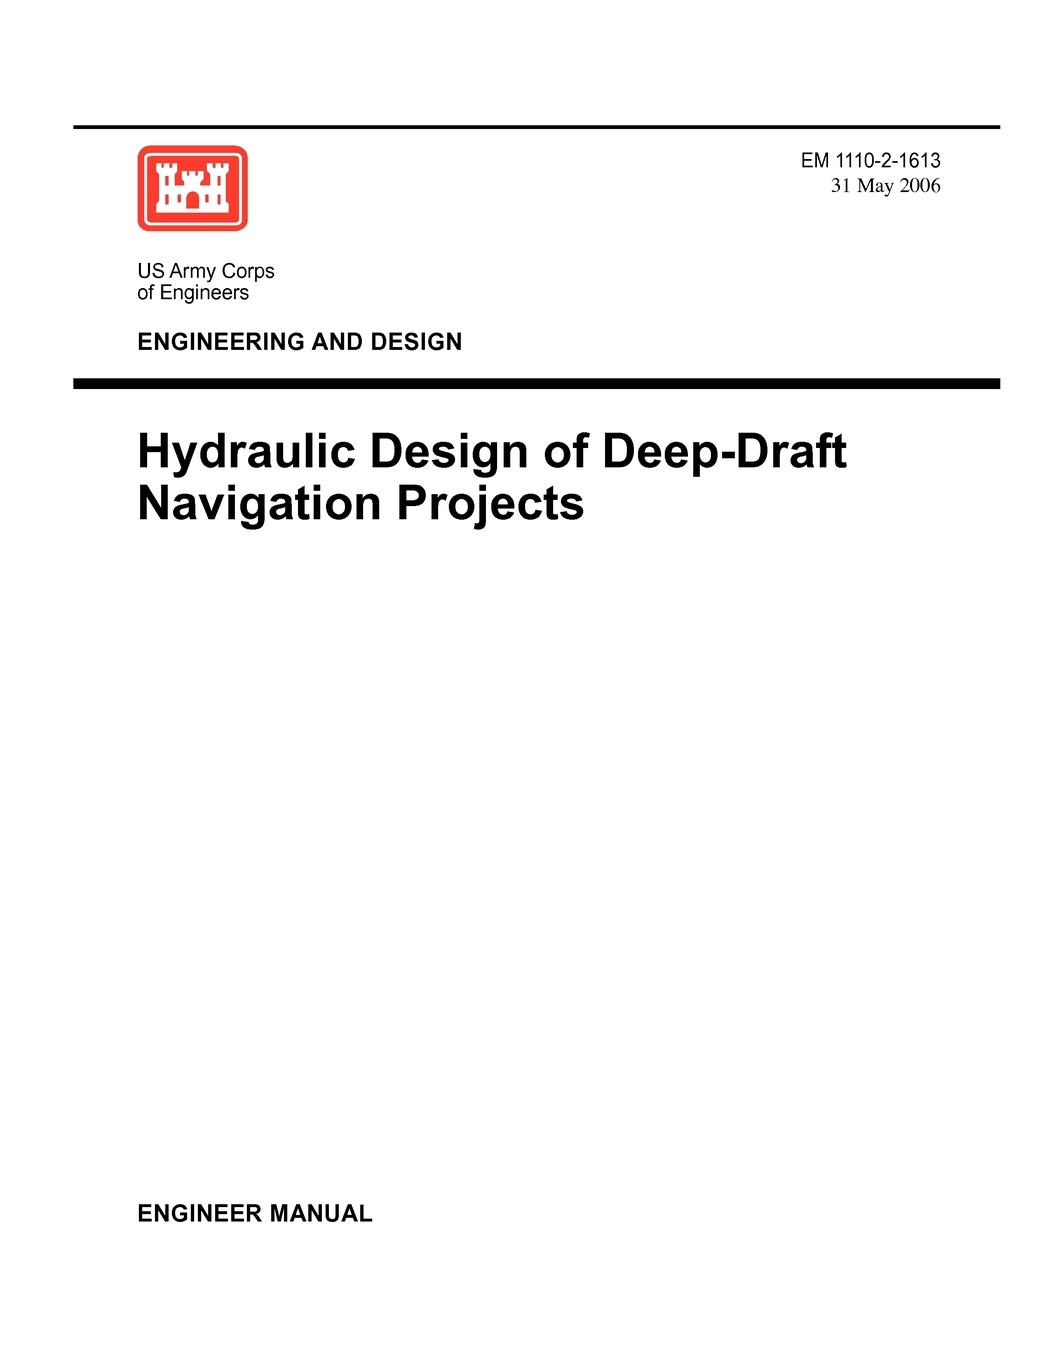 Engineering And Design Hydraulic Design Of Deep Draft Navigation Projects Engineer Manual 1110 2 1613 Walmart Com